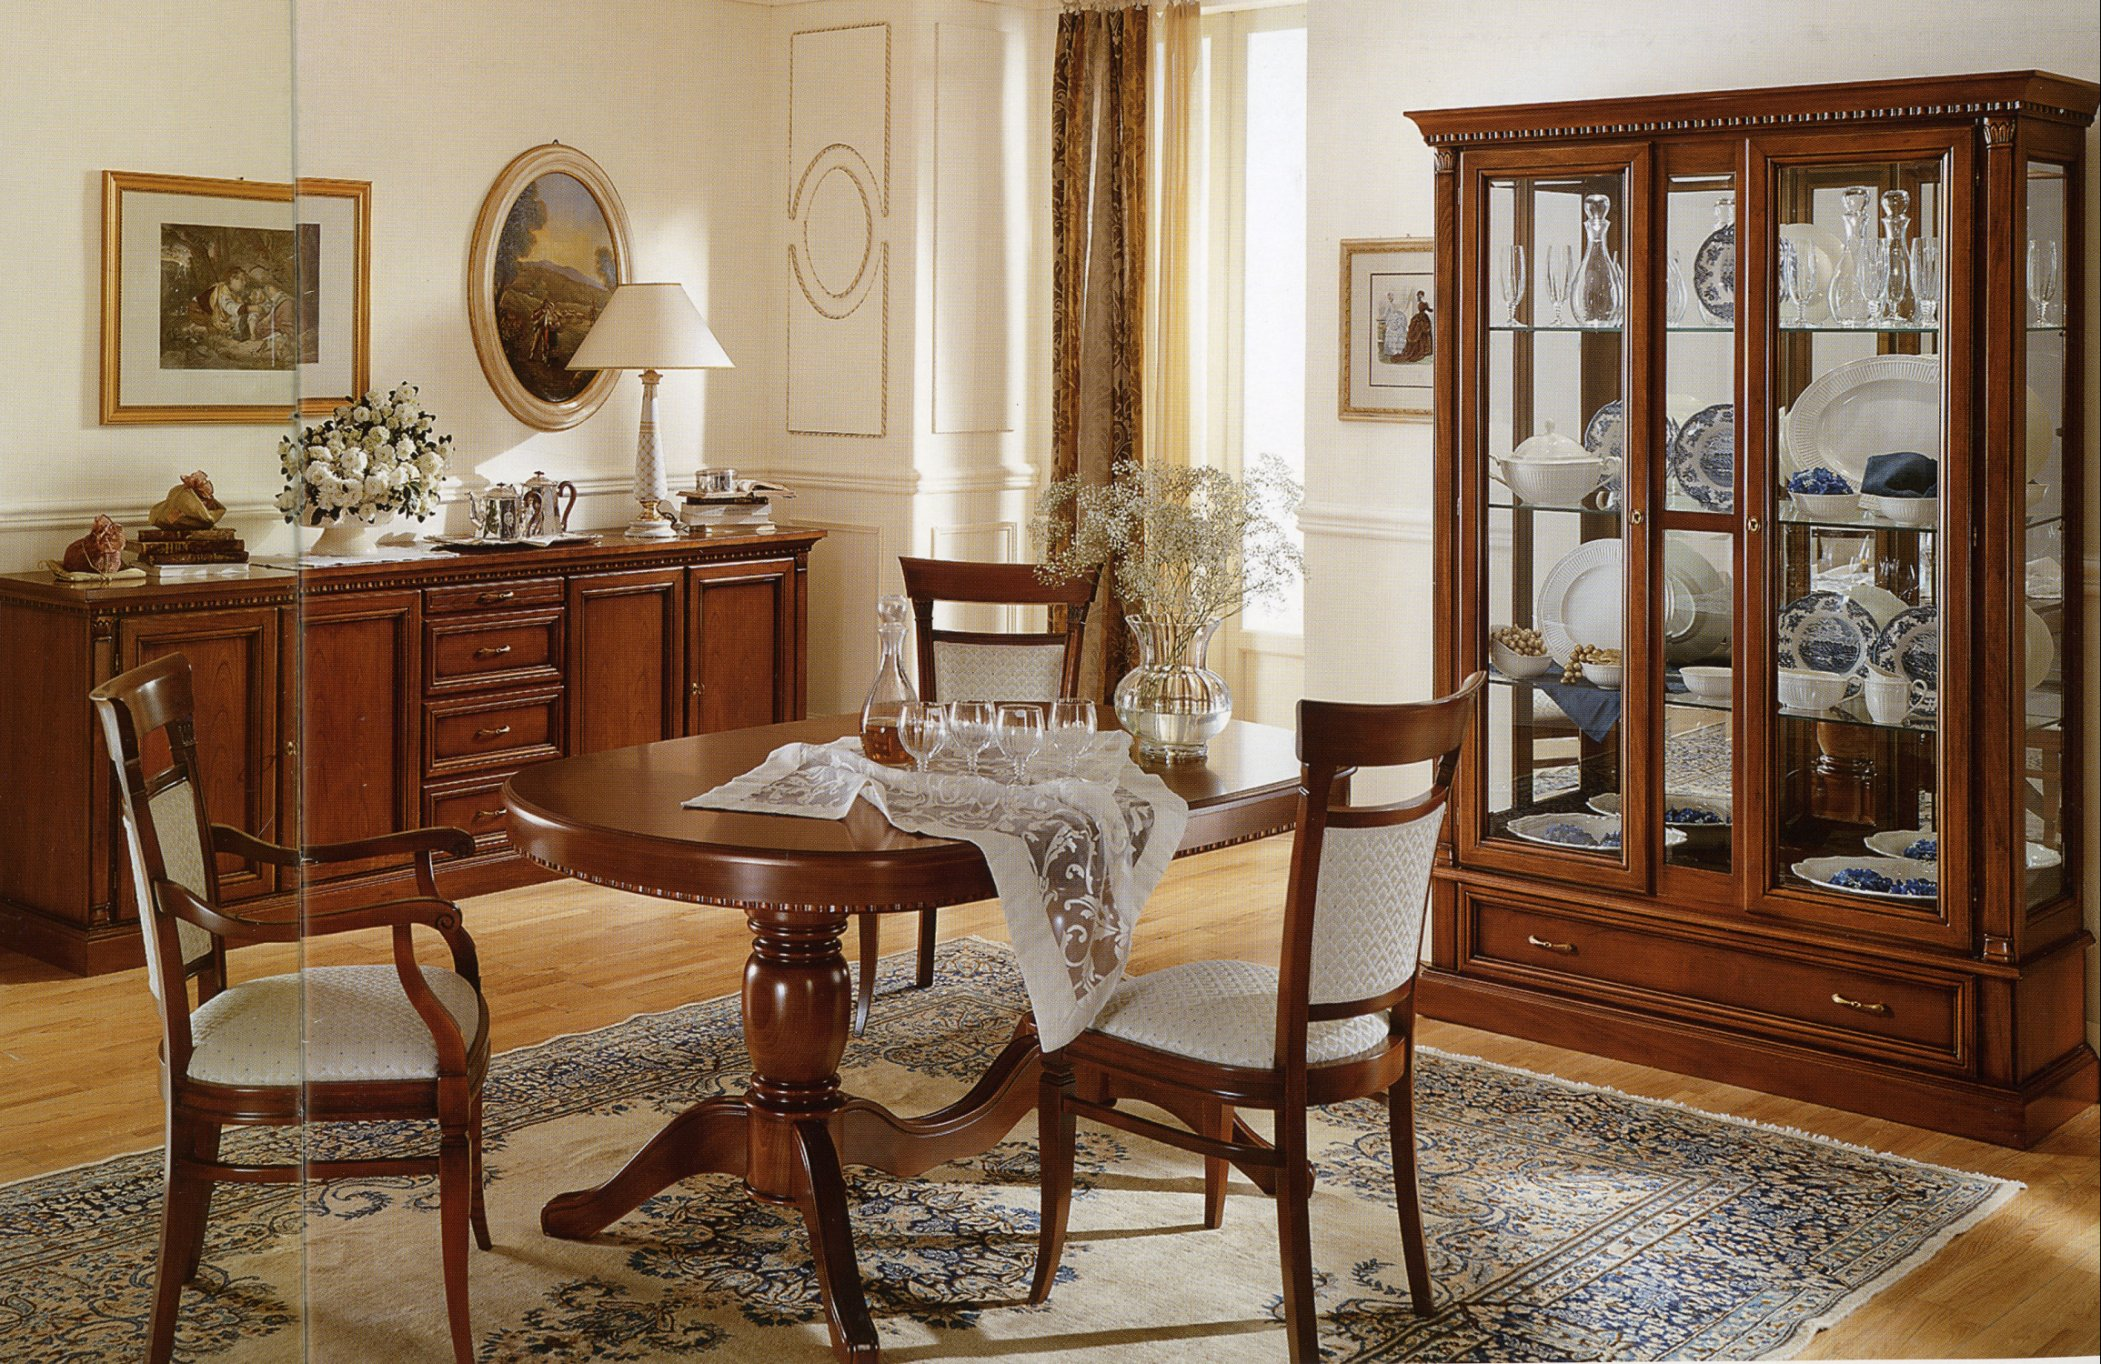 Dining Room Chair Patterns Cool Dining Room Furniture Sets Ideas To Clone Hgnv Com